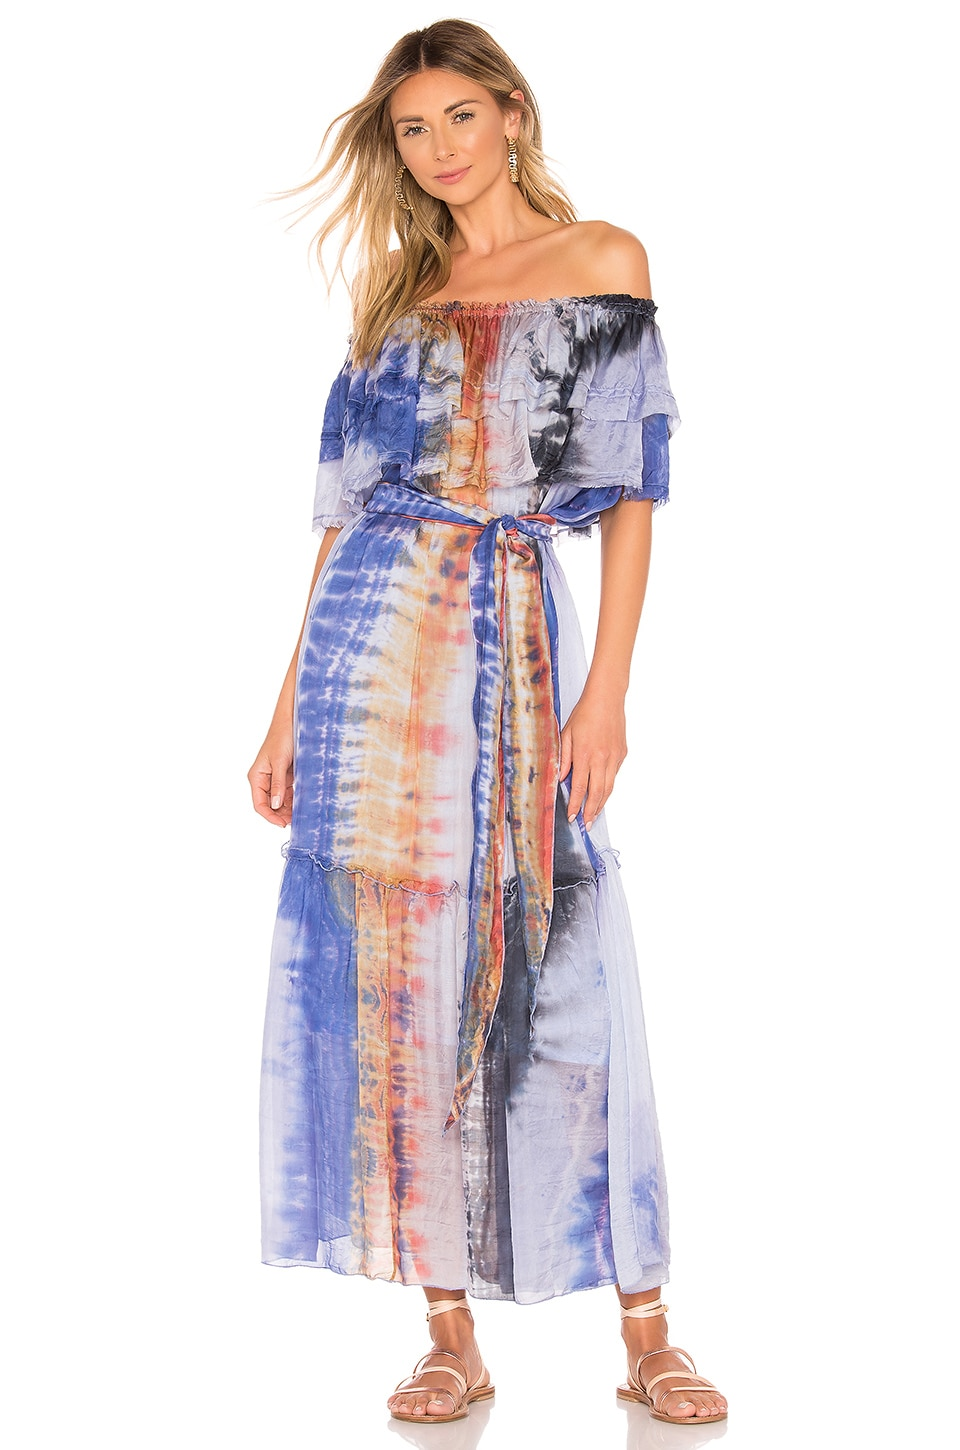 Raquel Allegra Dresses SILK RUFFLE MAXI DRESS